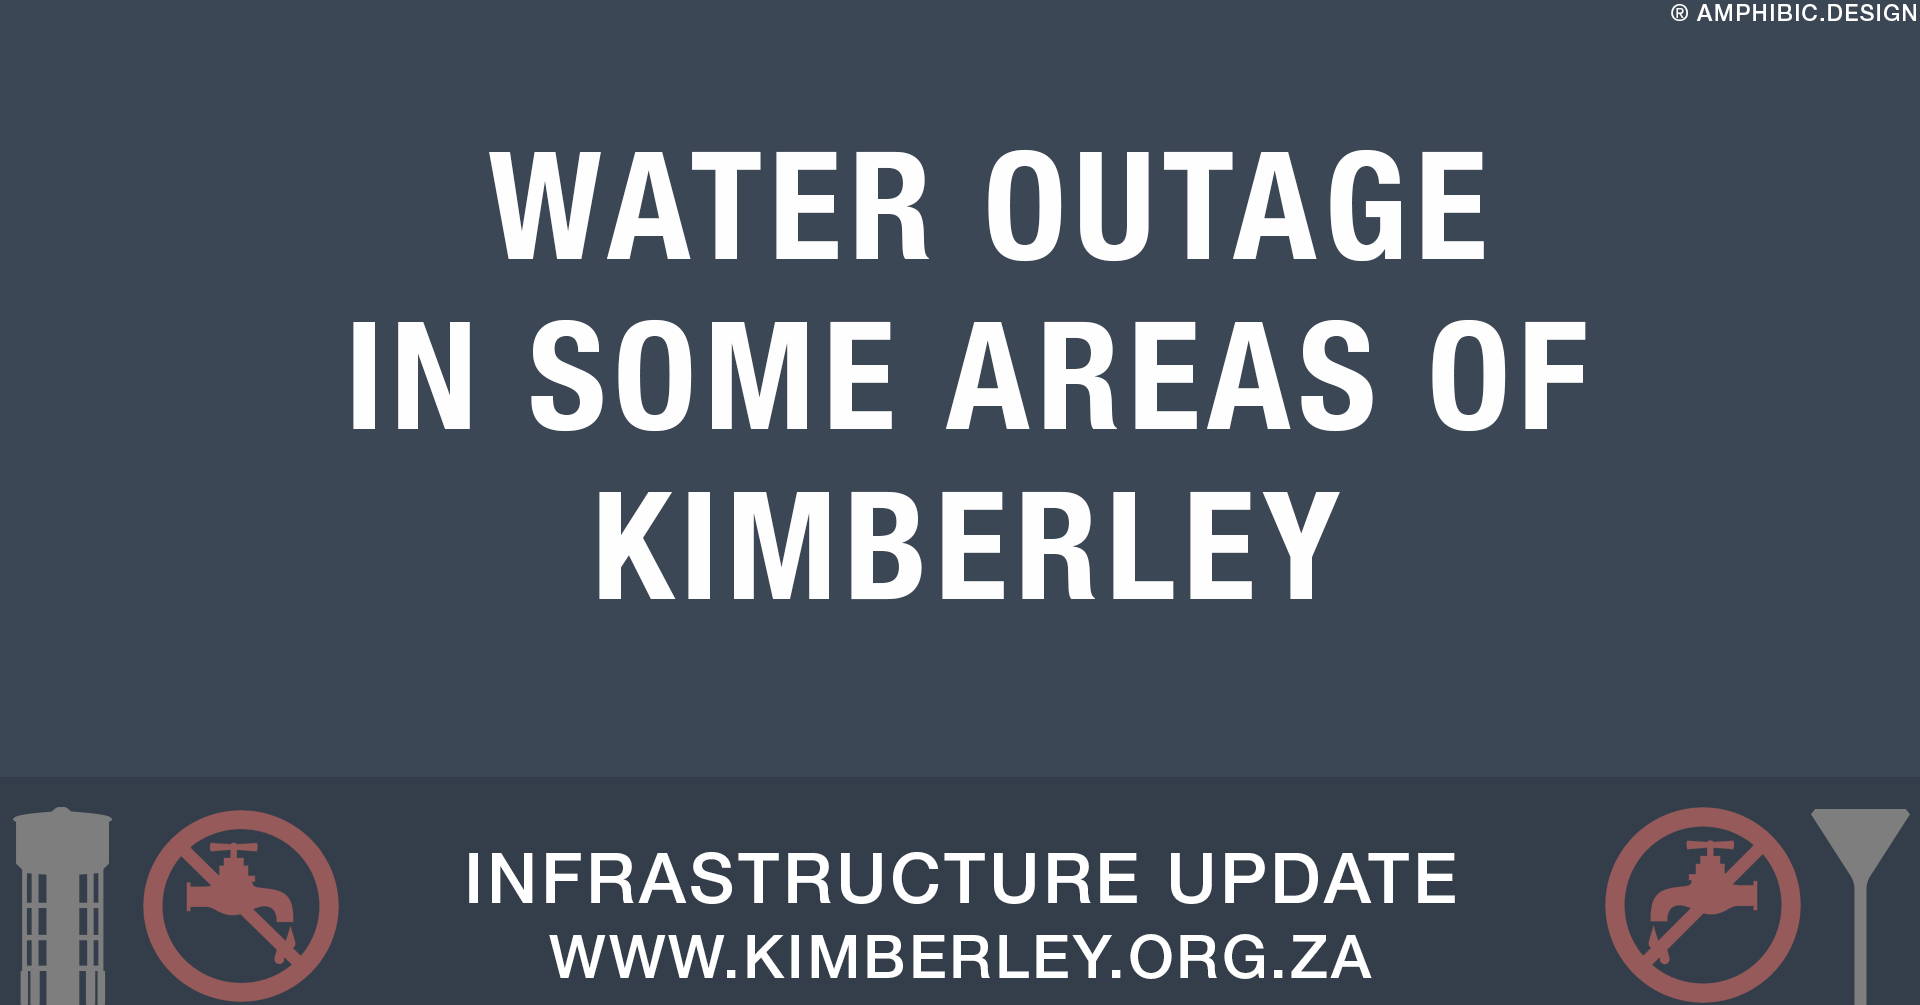 Water outage in some parts of Kimberley Sol Plaatje